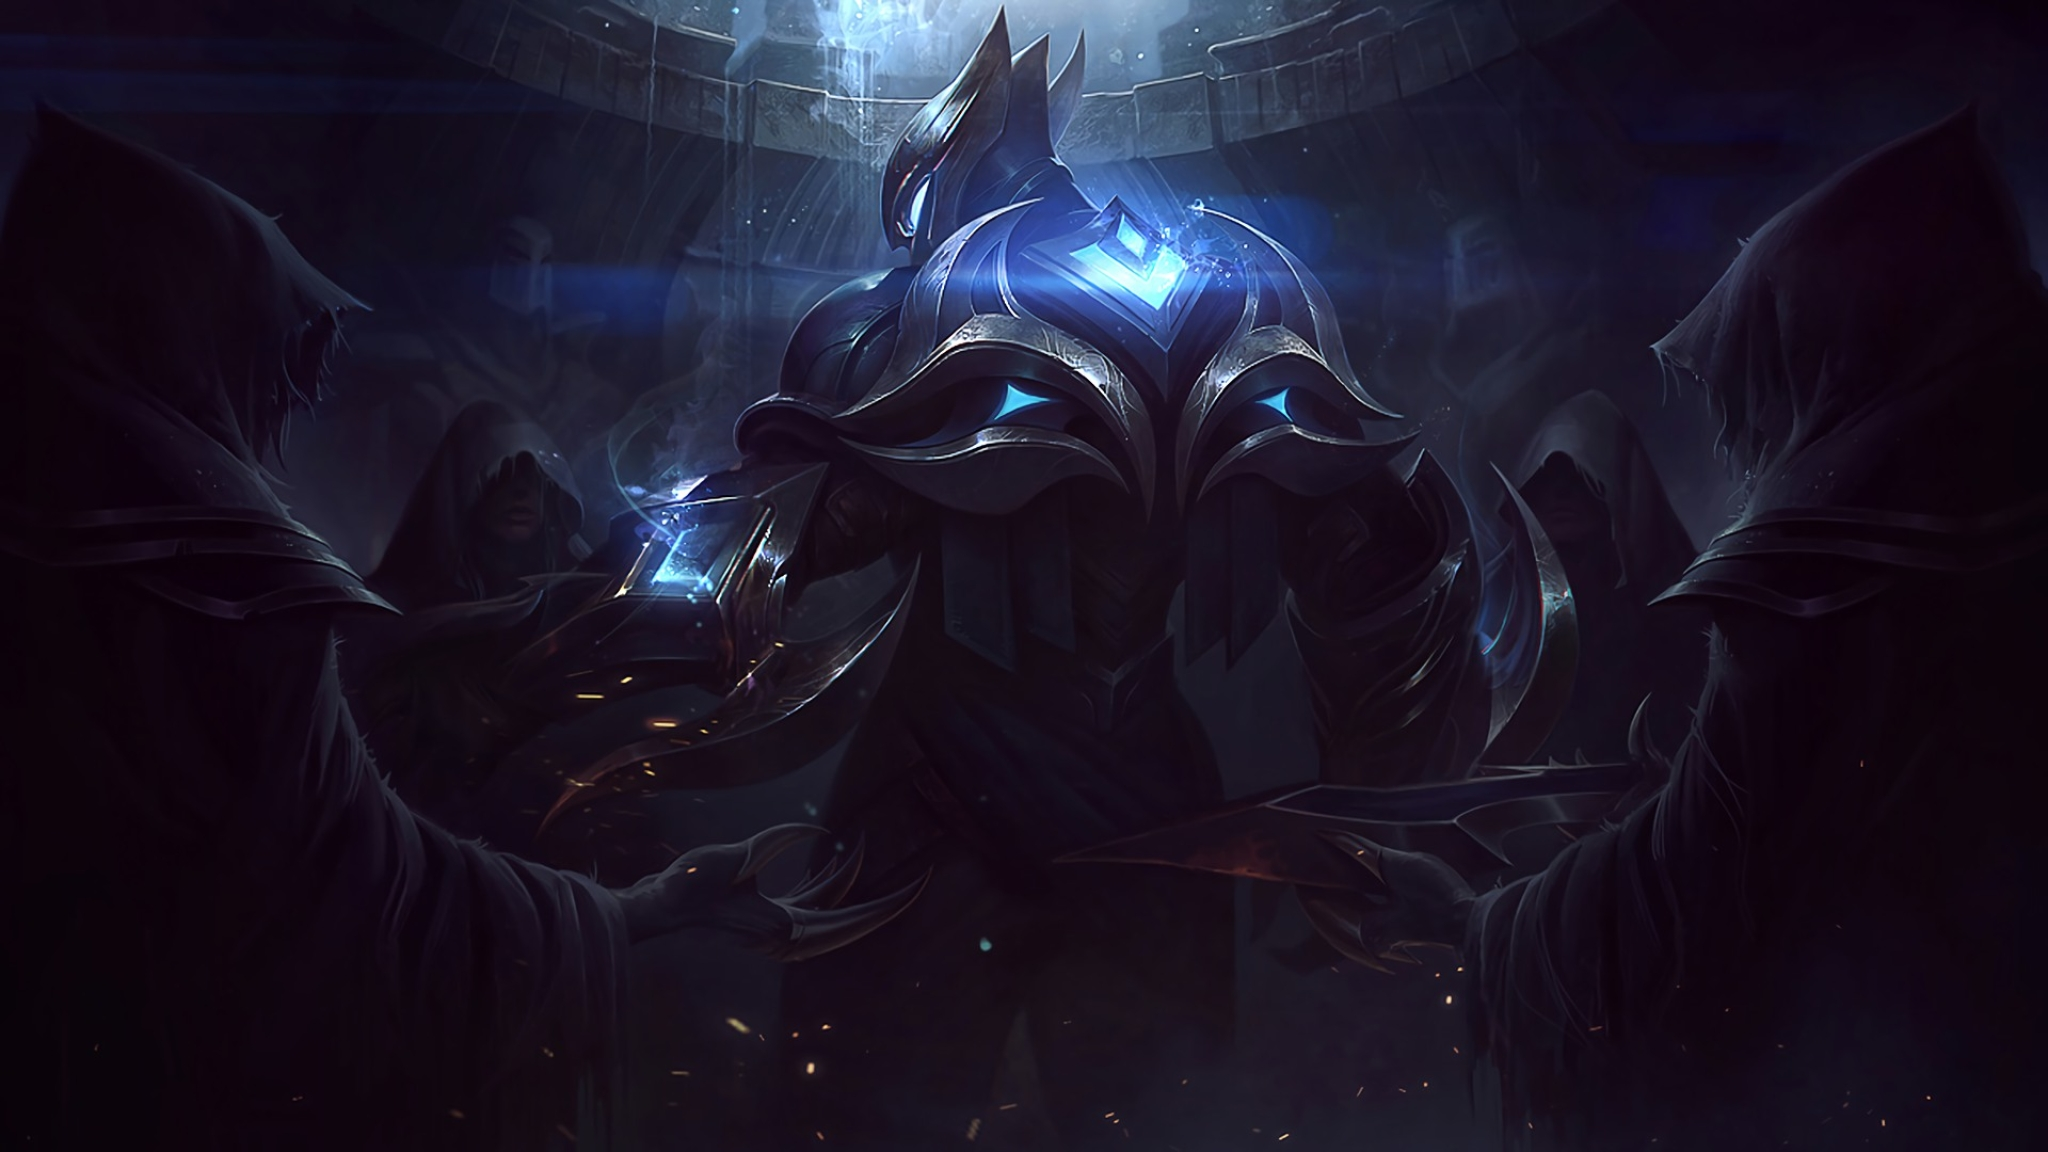 2048x1152 Zed Lol Championship 2048x1152 Resolution Wallpaper Hd Games 4k Wallpapers Images Photos And Background